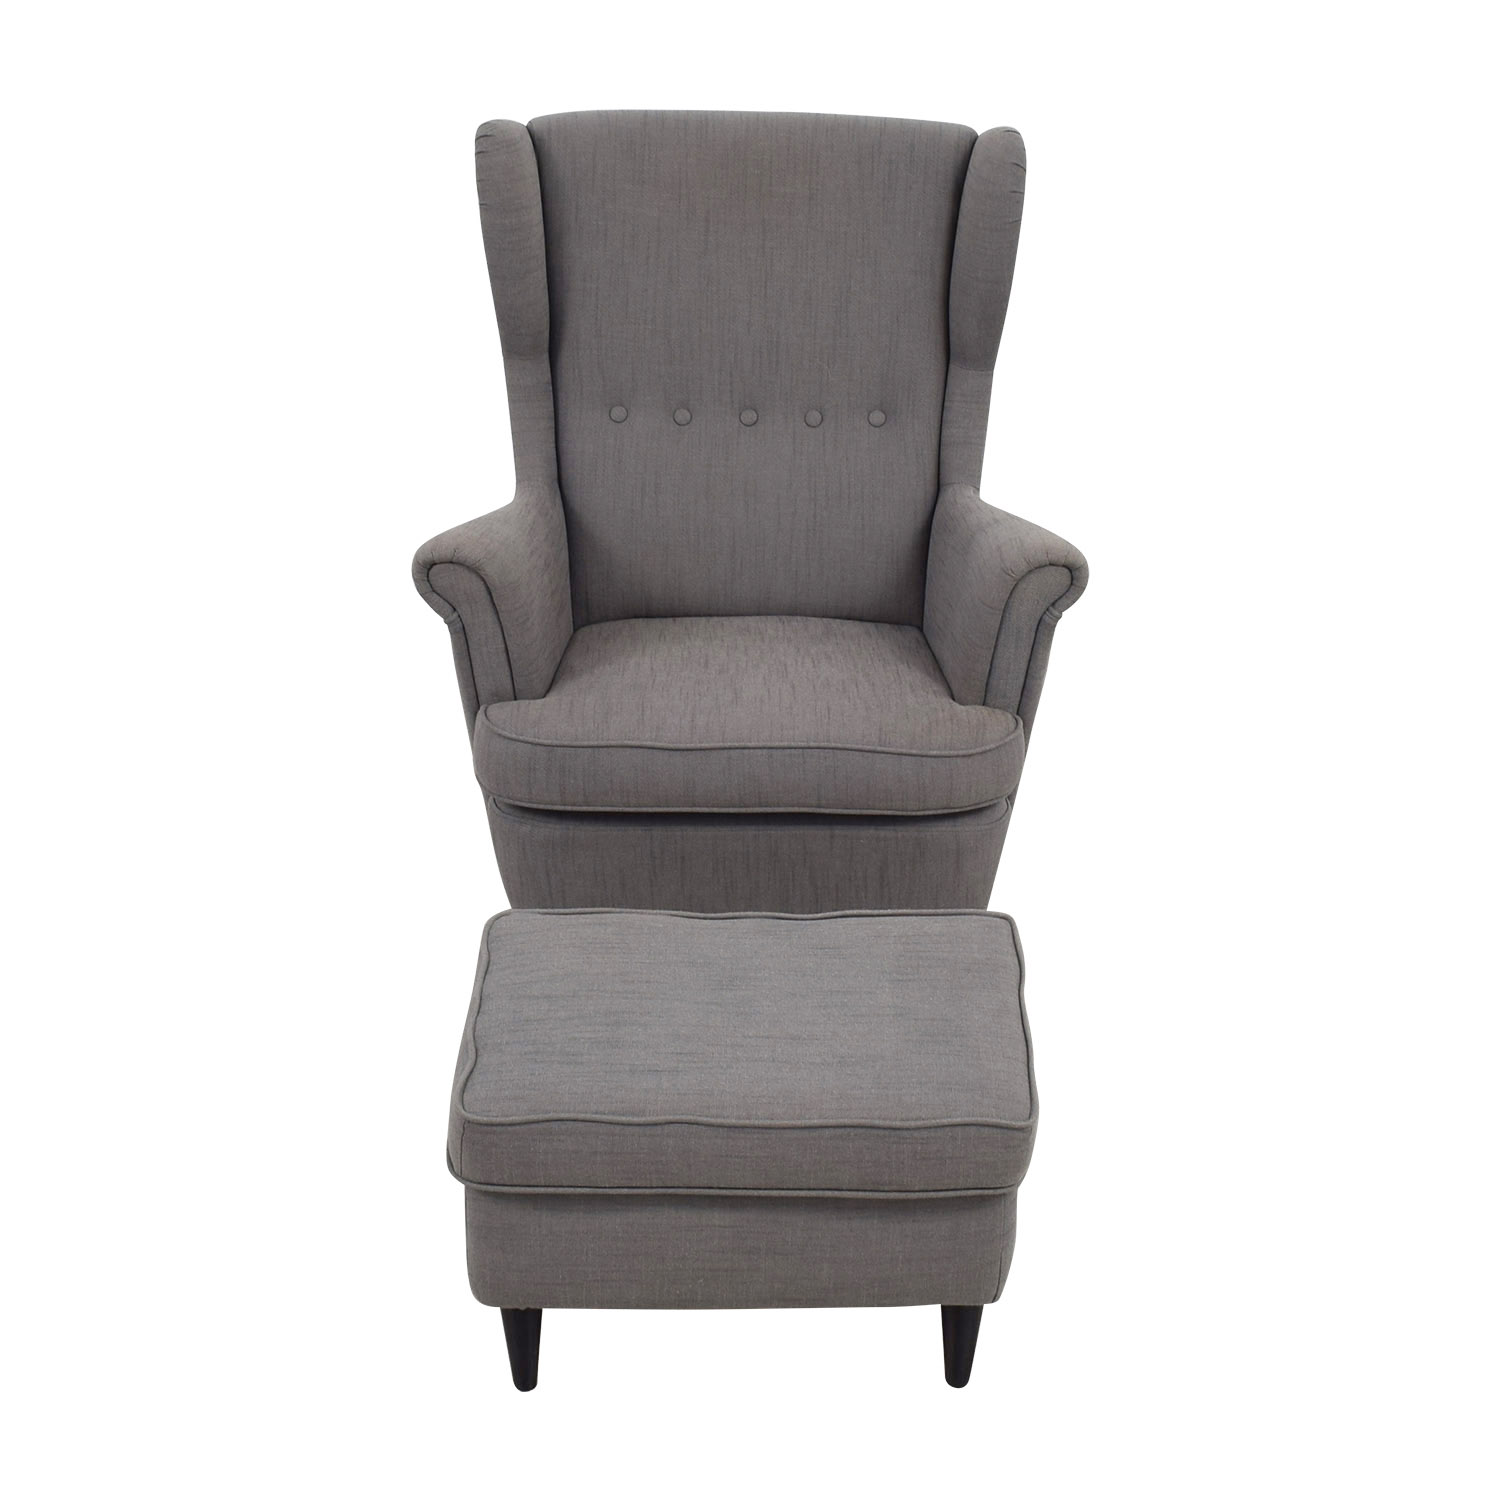 IKEA Grey Wing Chair and Ottoman sale